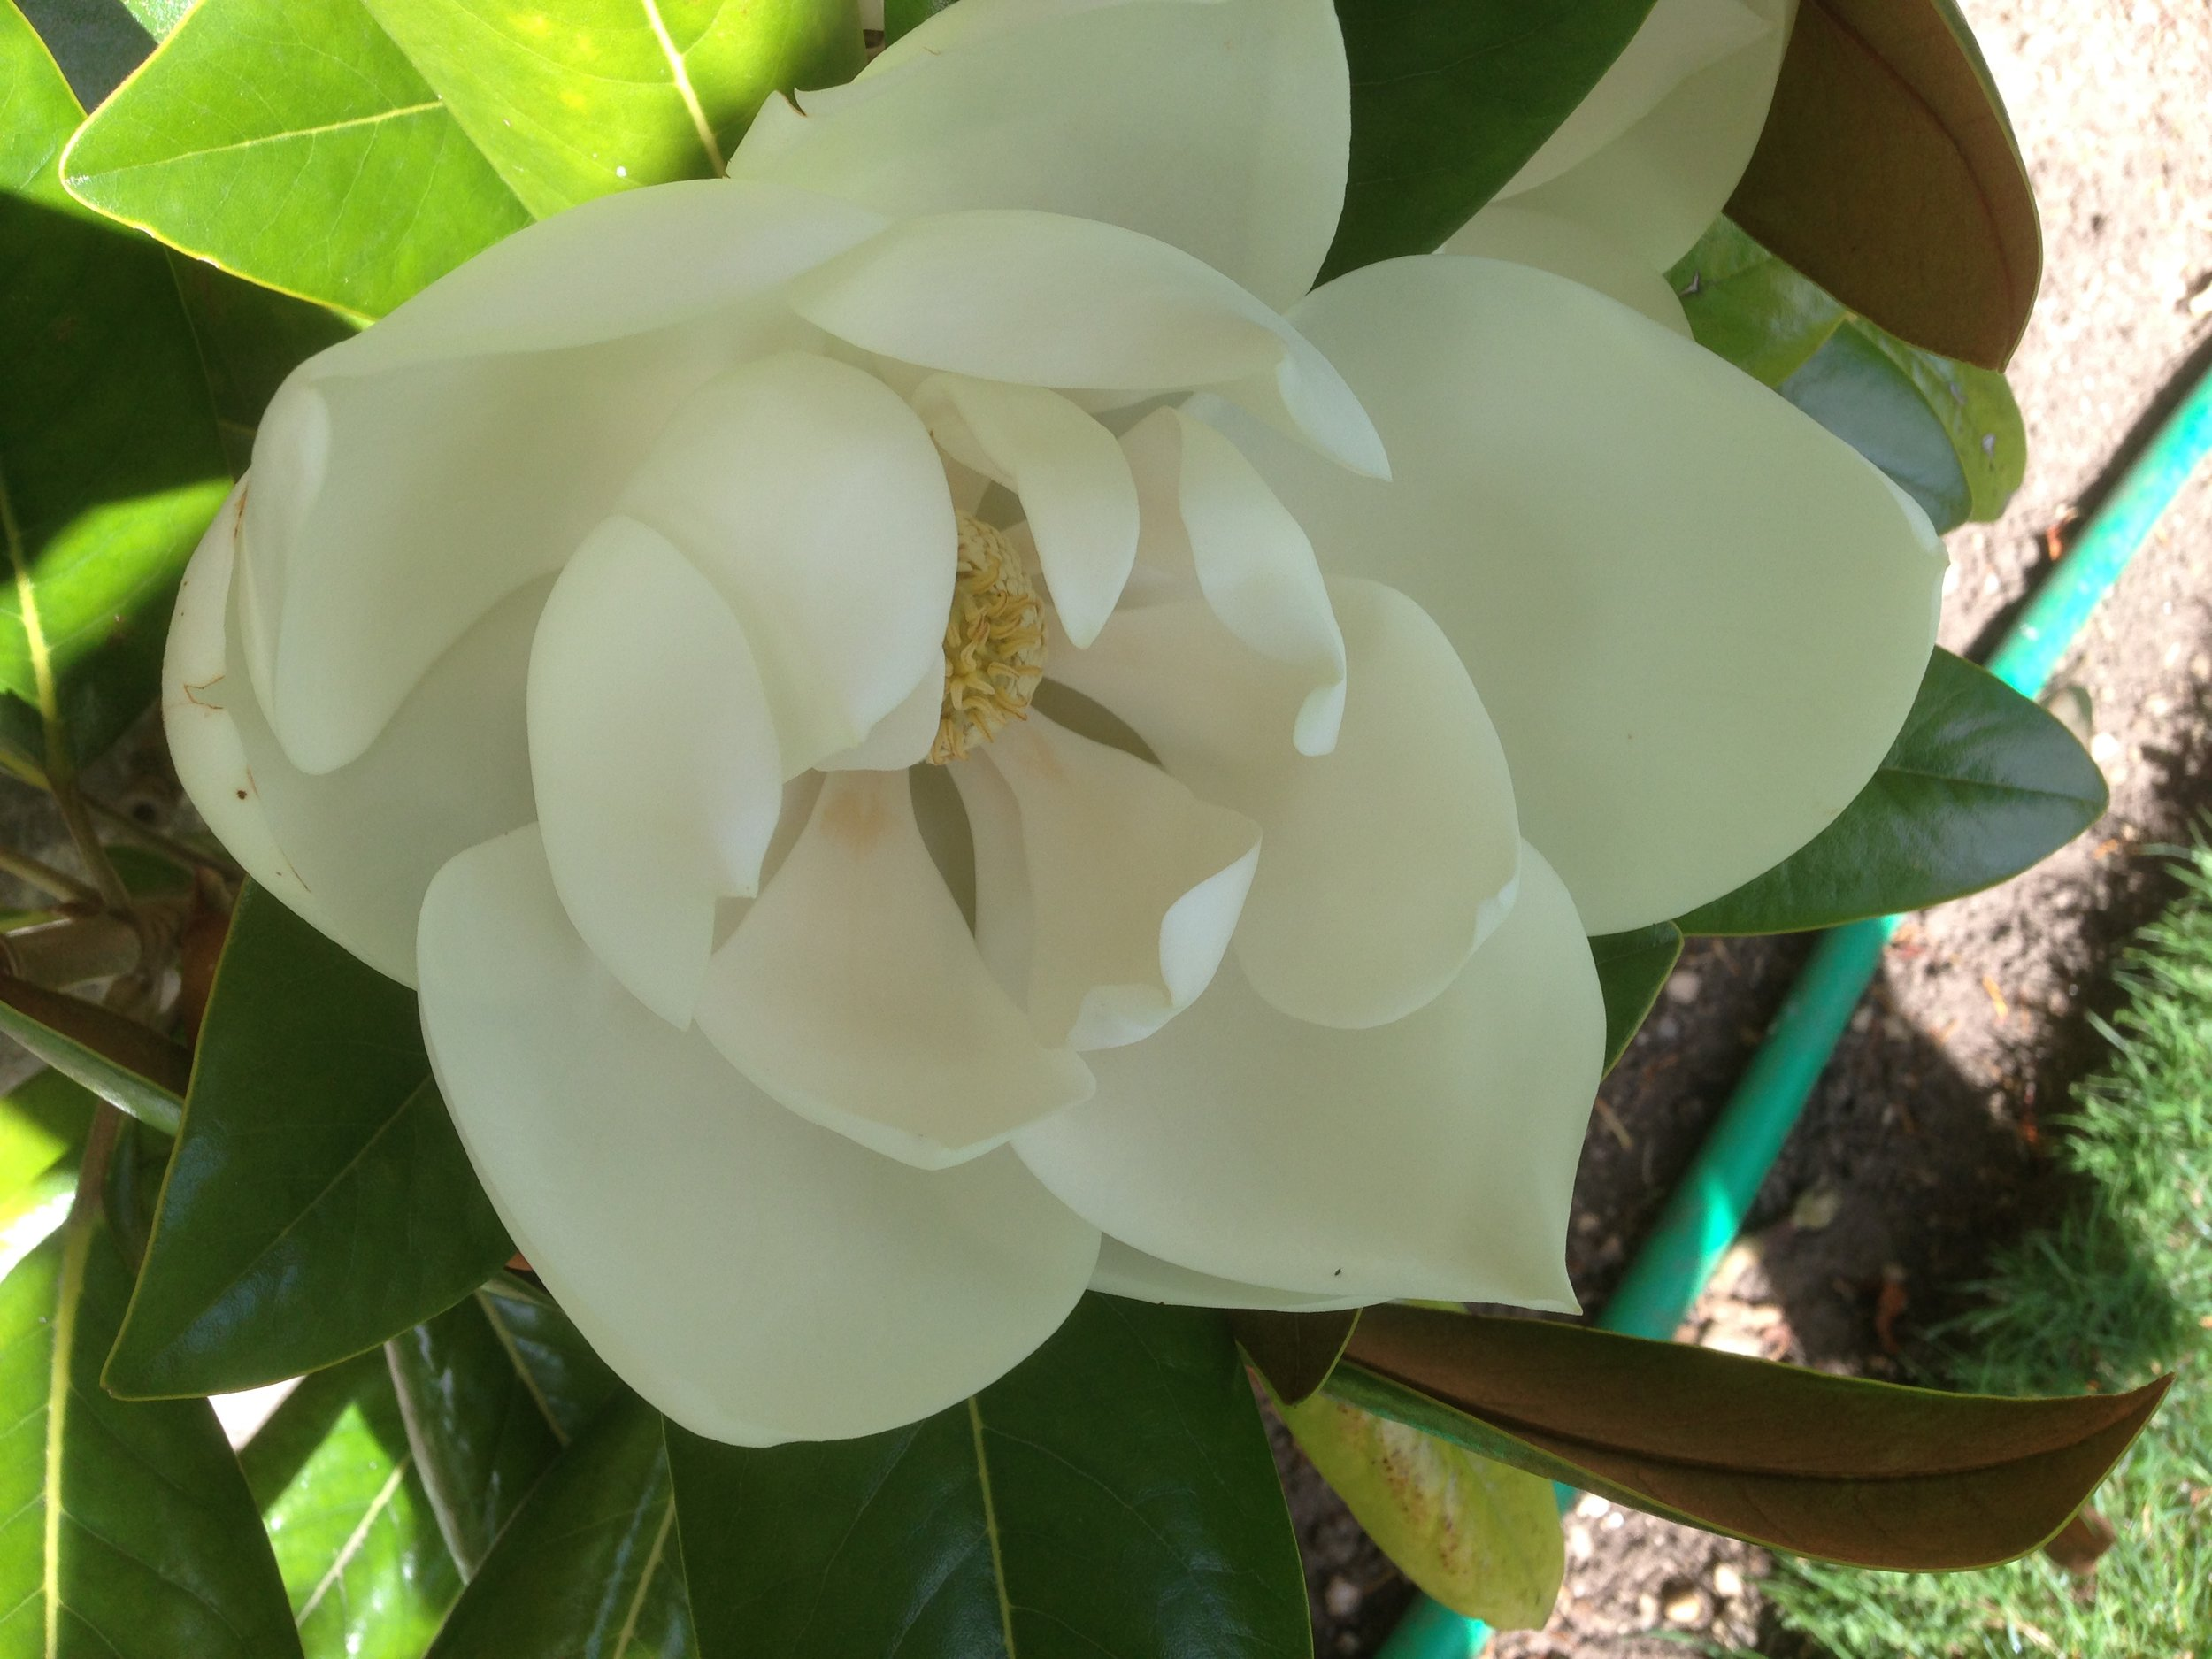 The bowl-shaped flowers of  Magnolia grandiflora (Gillian Goodson Designs)